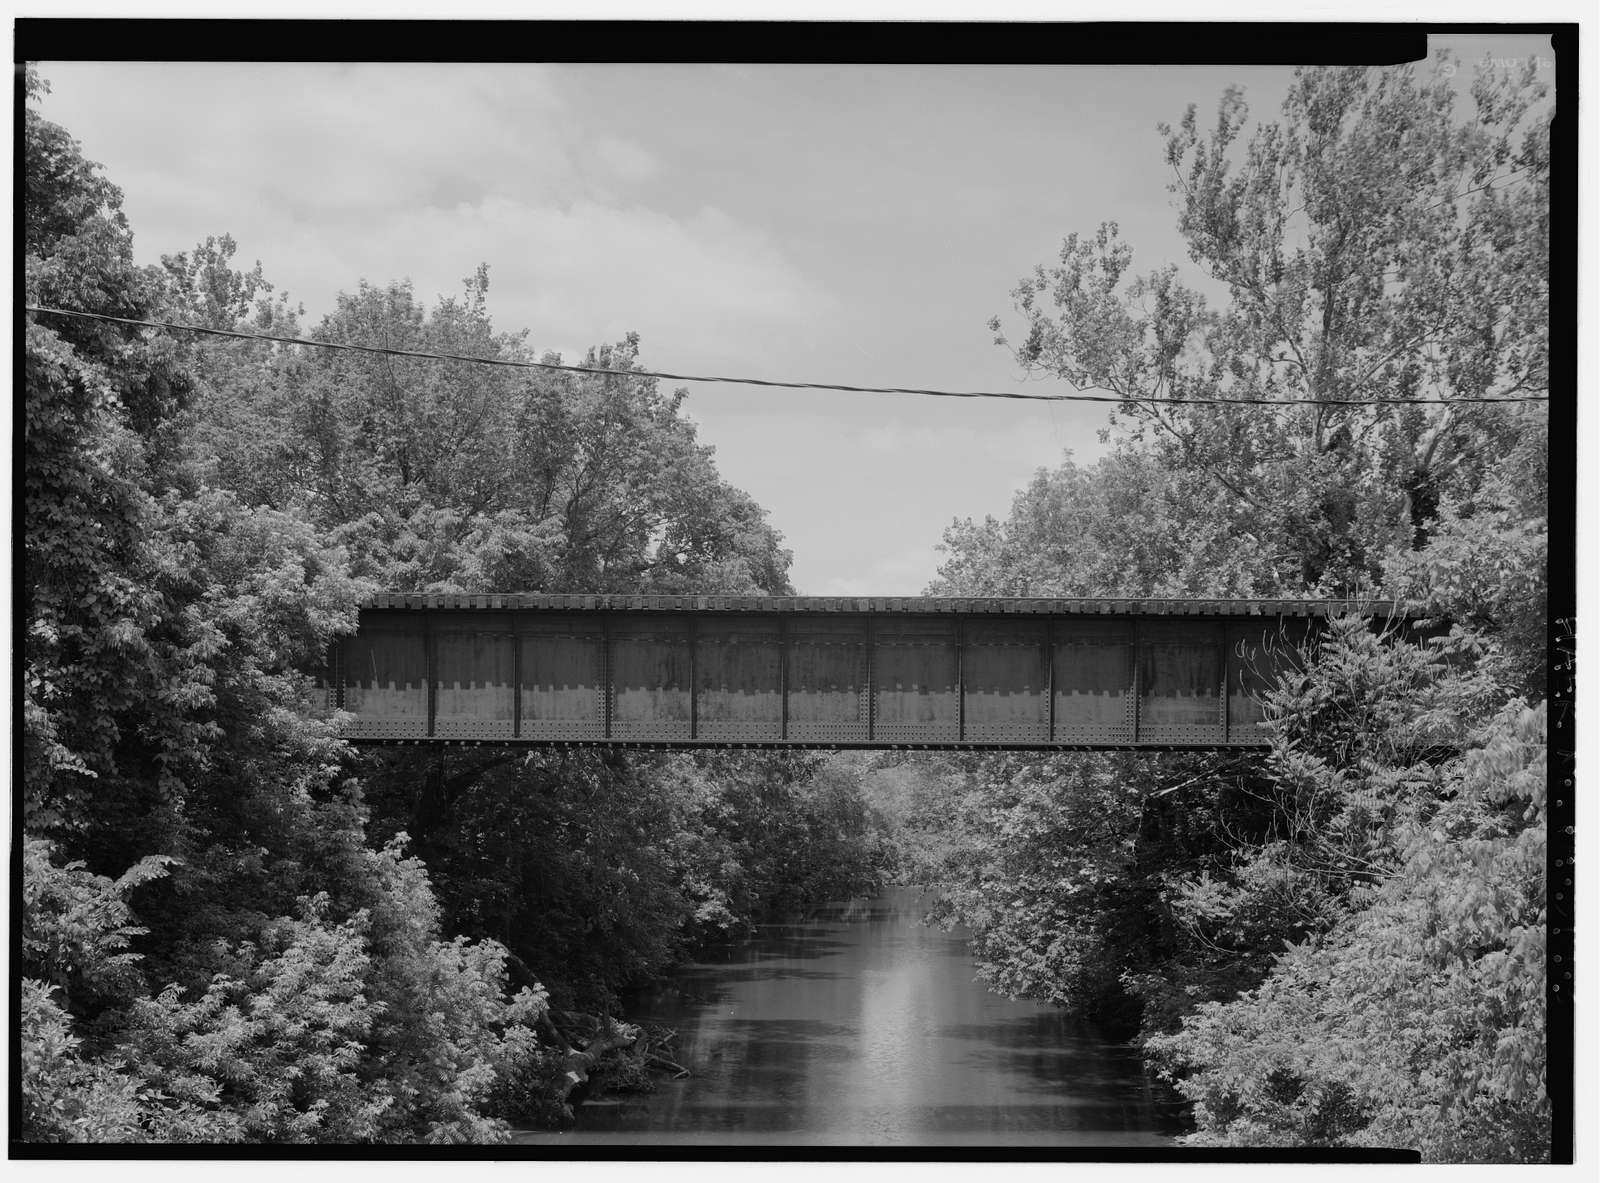 Pennsylvania Railroad, French Creek Trestle, Spanning French Creek, north of Paradise Street, Phoenixville, Chester County, PA